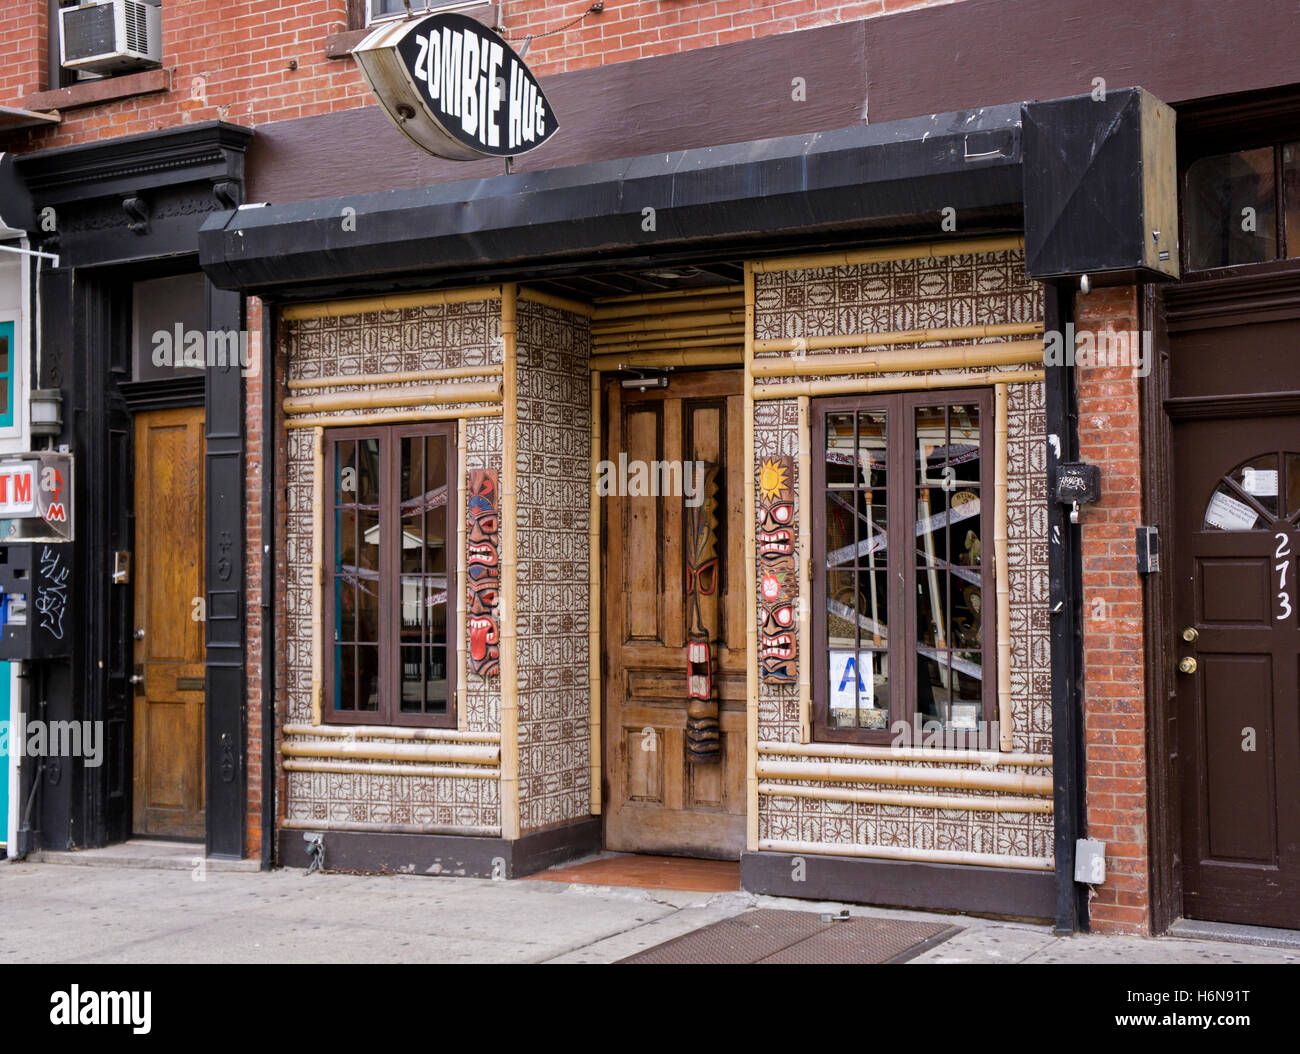 Exterior of the Zombie Hut kitschy tiki bar in Cobble Hill, Brooklyn, New York City - Stock Image